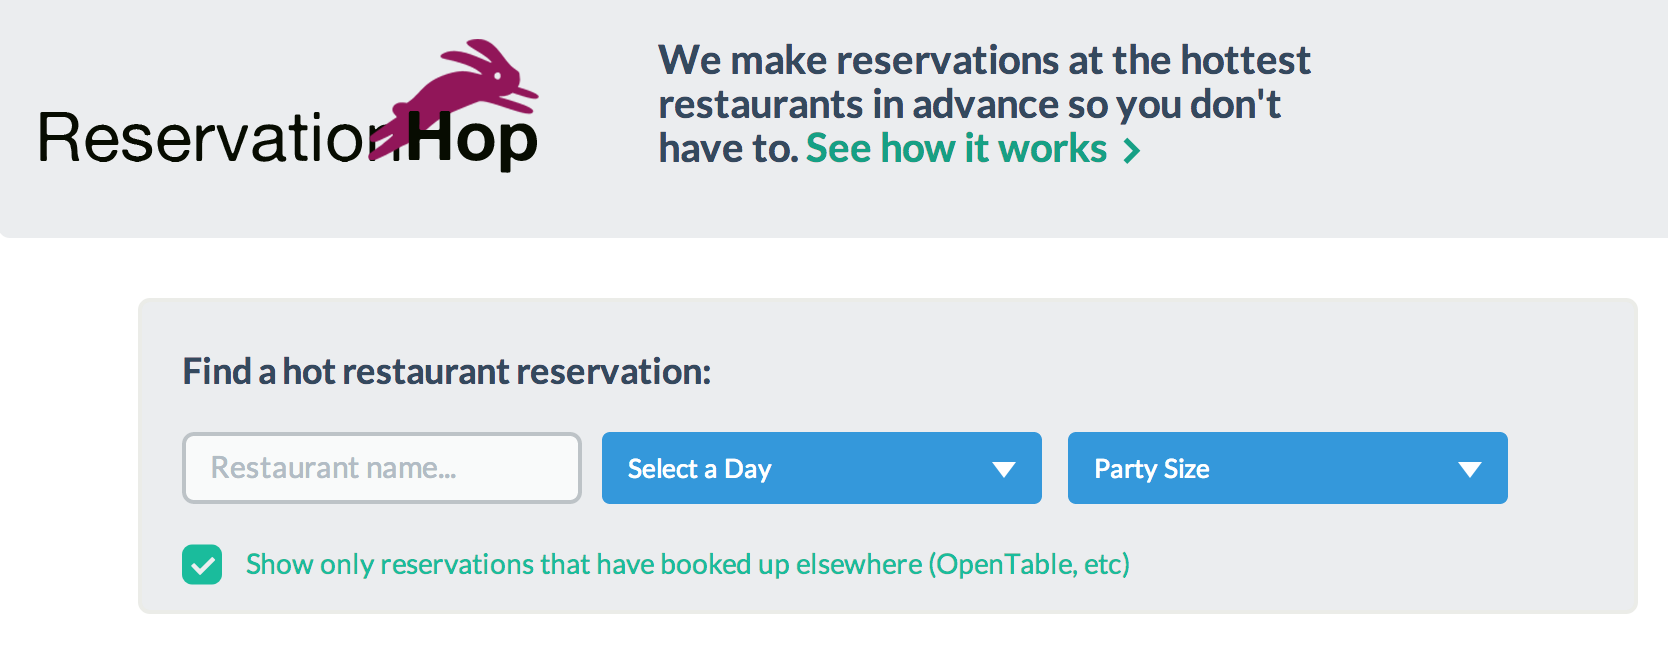 This Restaurant Reservation Startup Is Sleazy